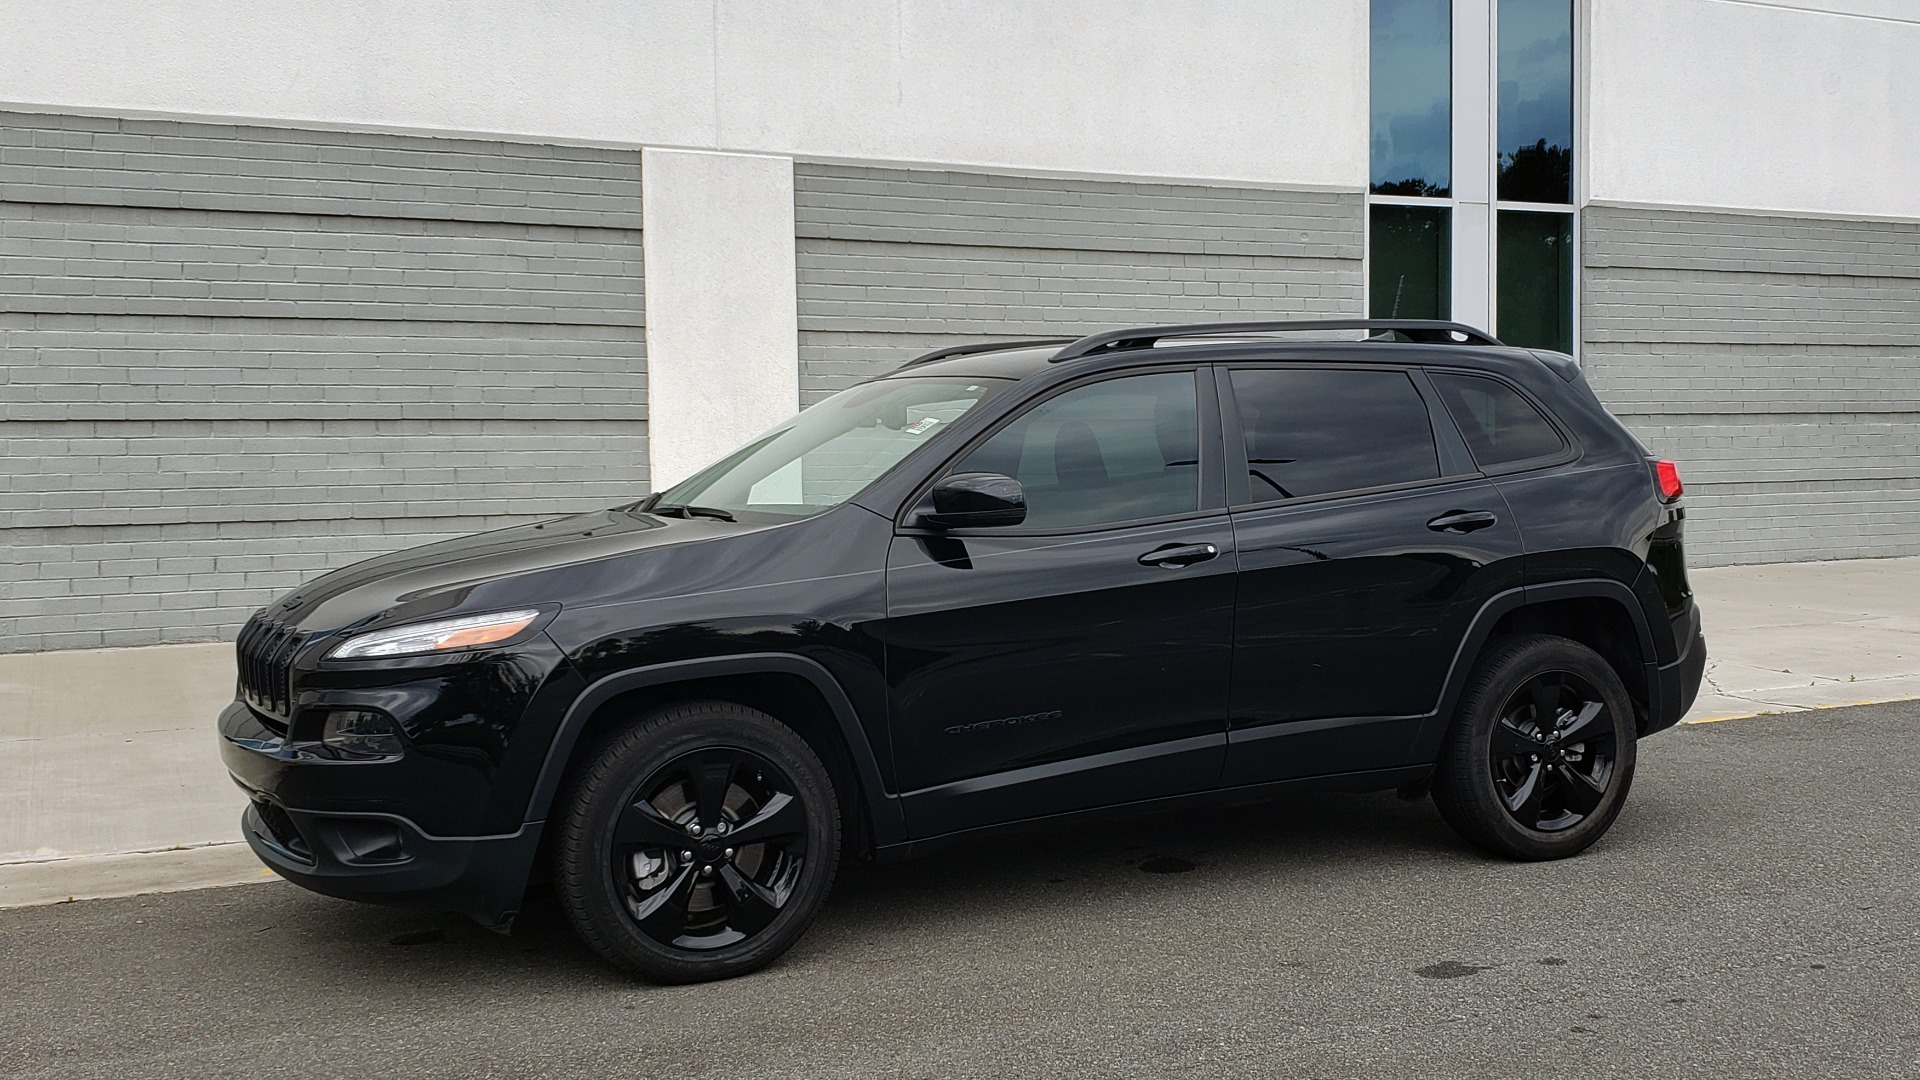 Used 2018 Jeep CHEROKEE LIMITED HIGH ALTITUDE FWD / PARK ASST / BLIND SPOT / REARVIEW for sale $20,995 at Formula Imports in Charlotte NC 28227 3